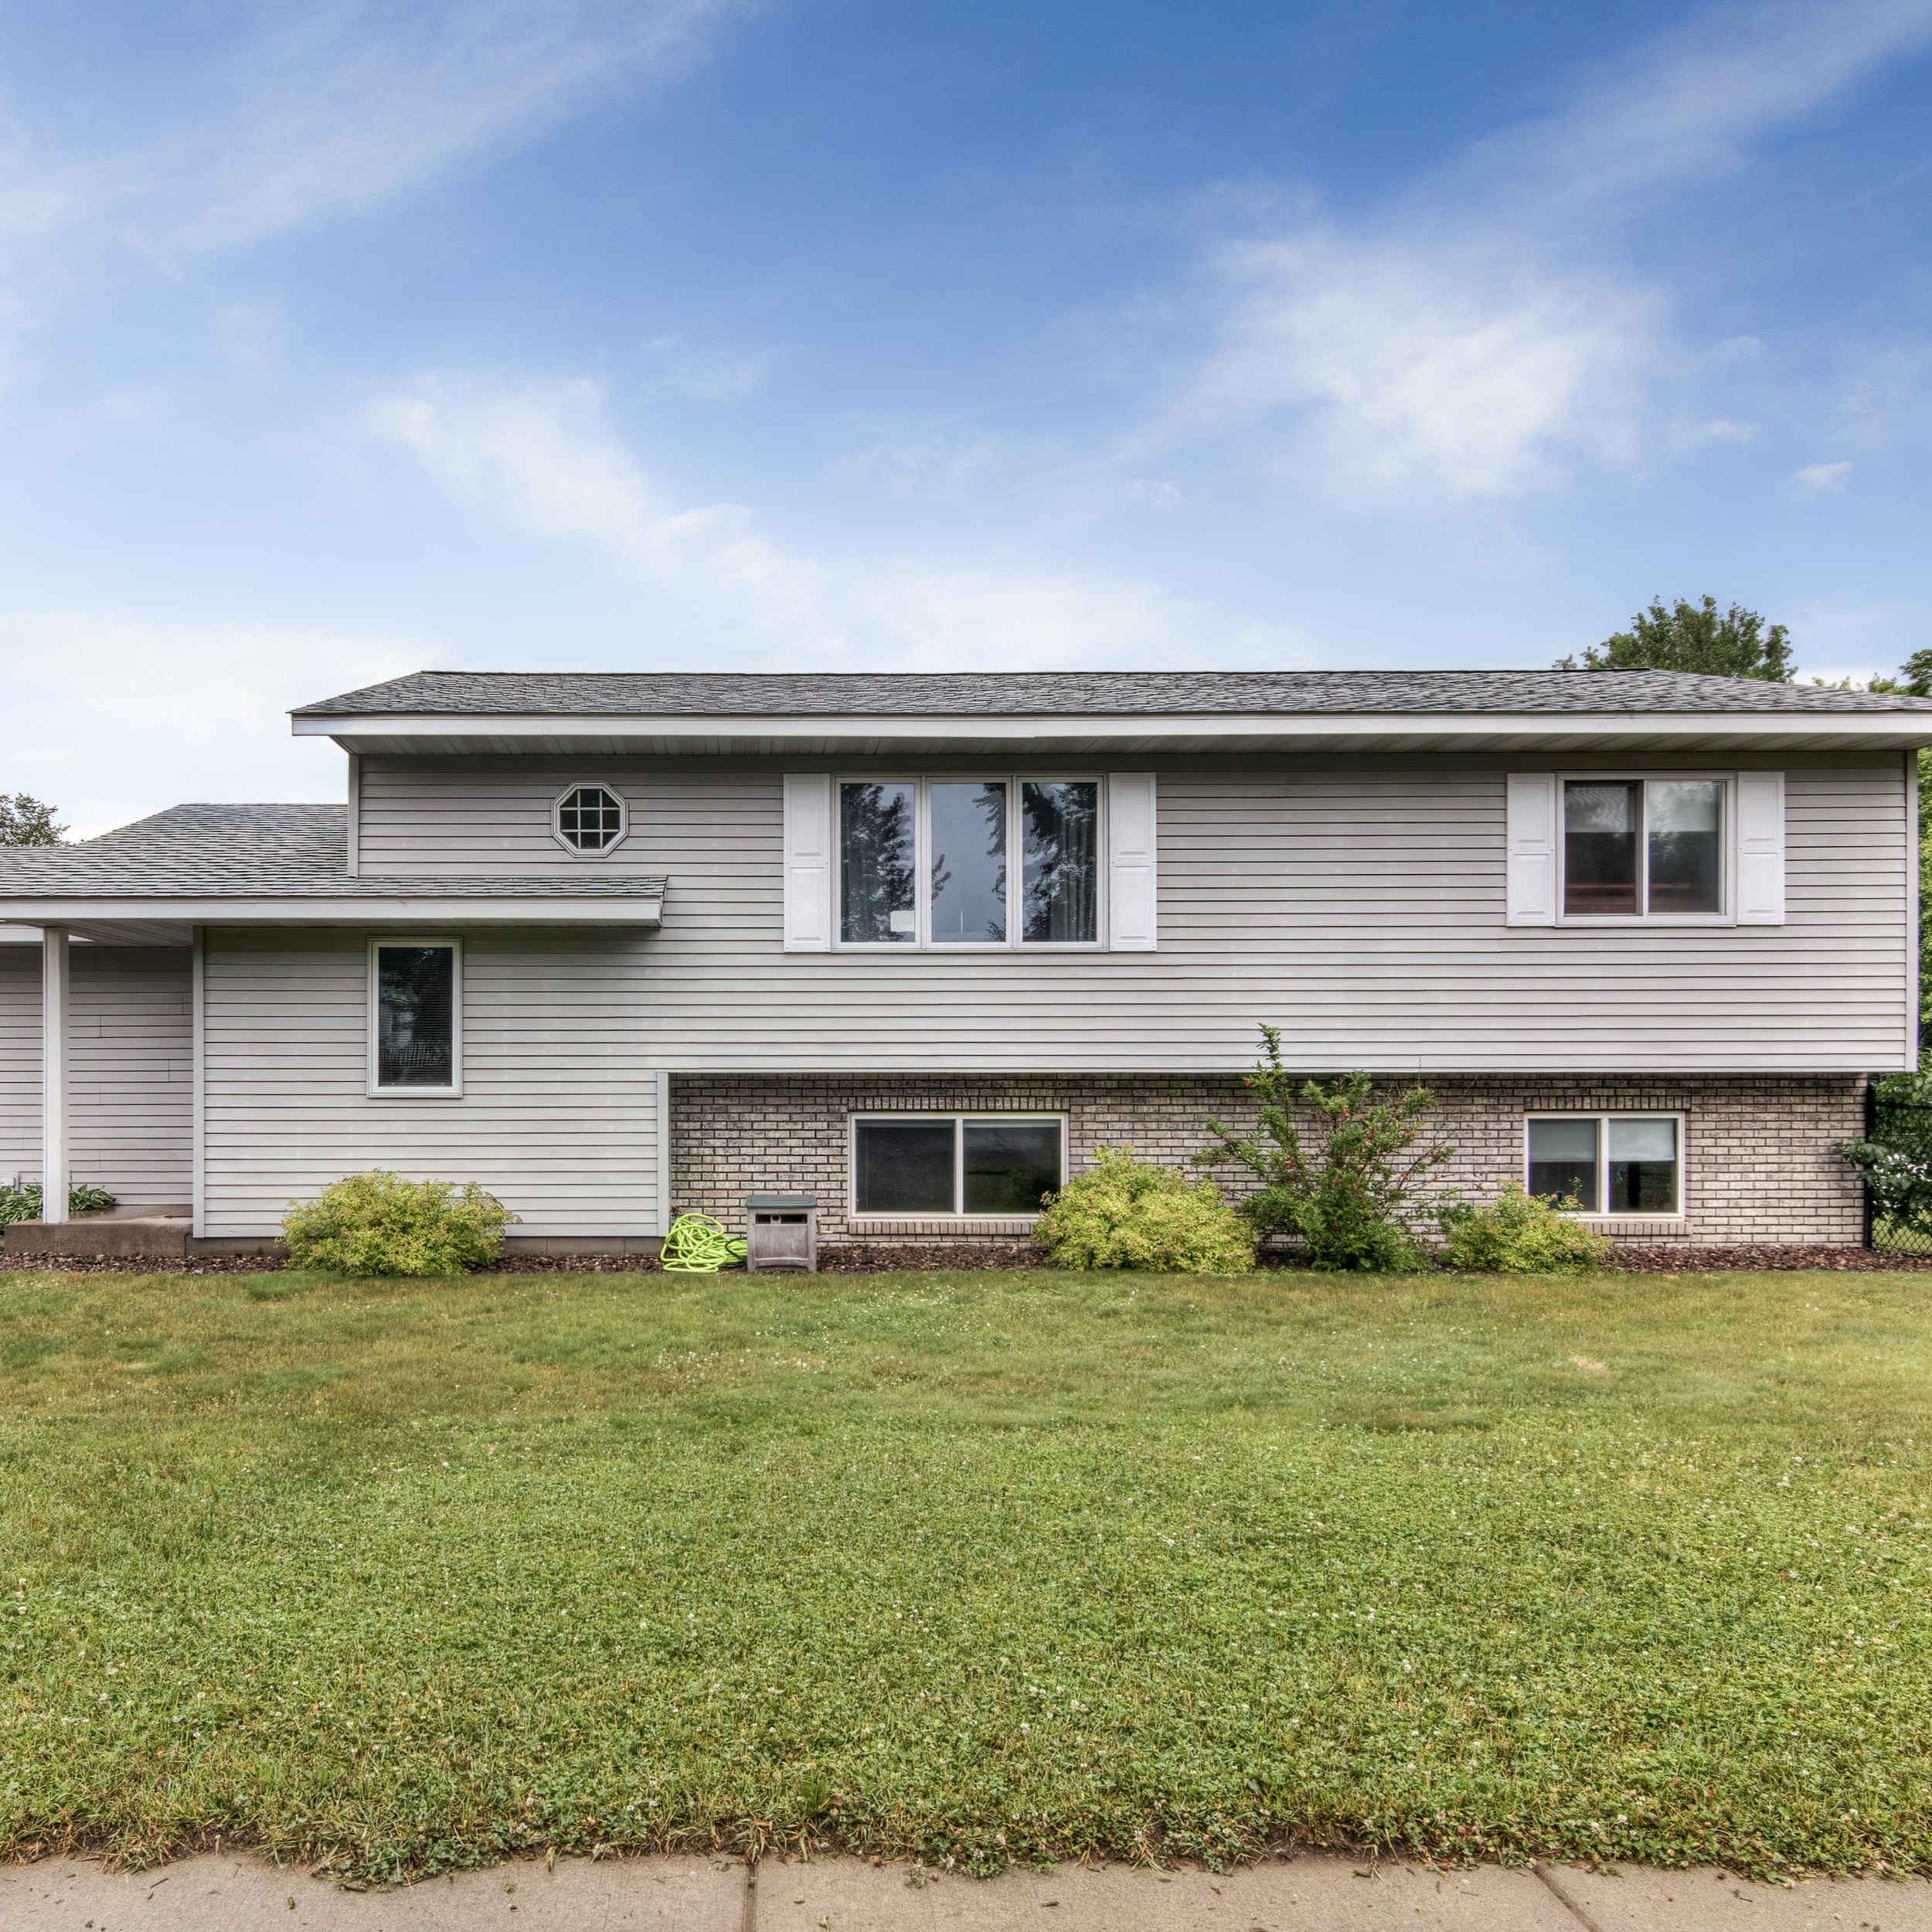 1911 Bell St - New Listing!